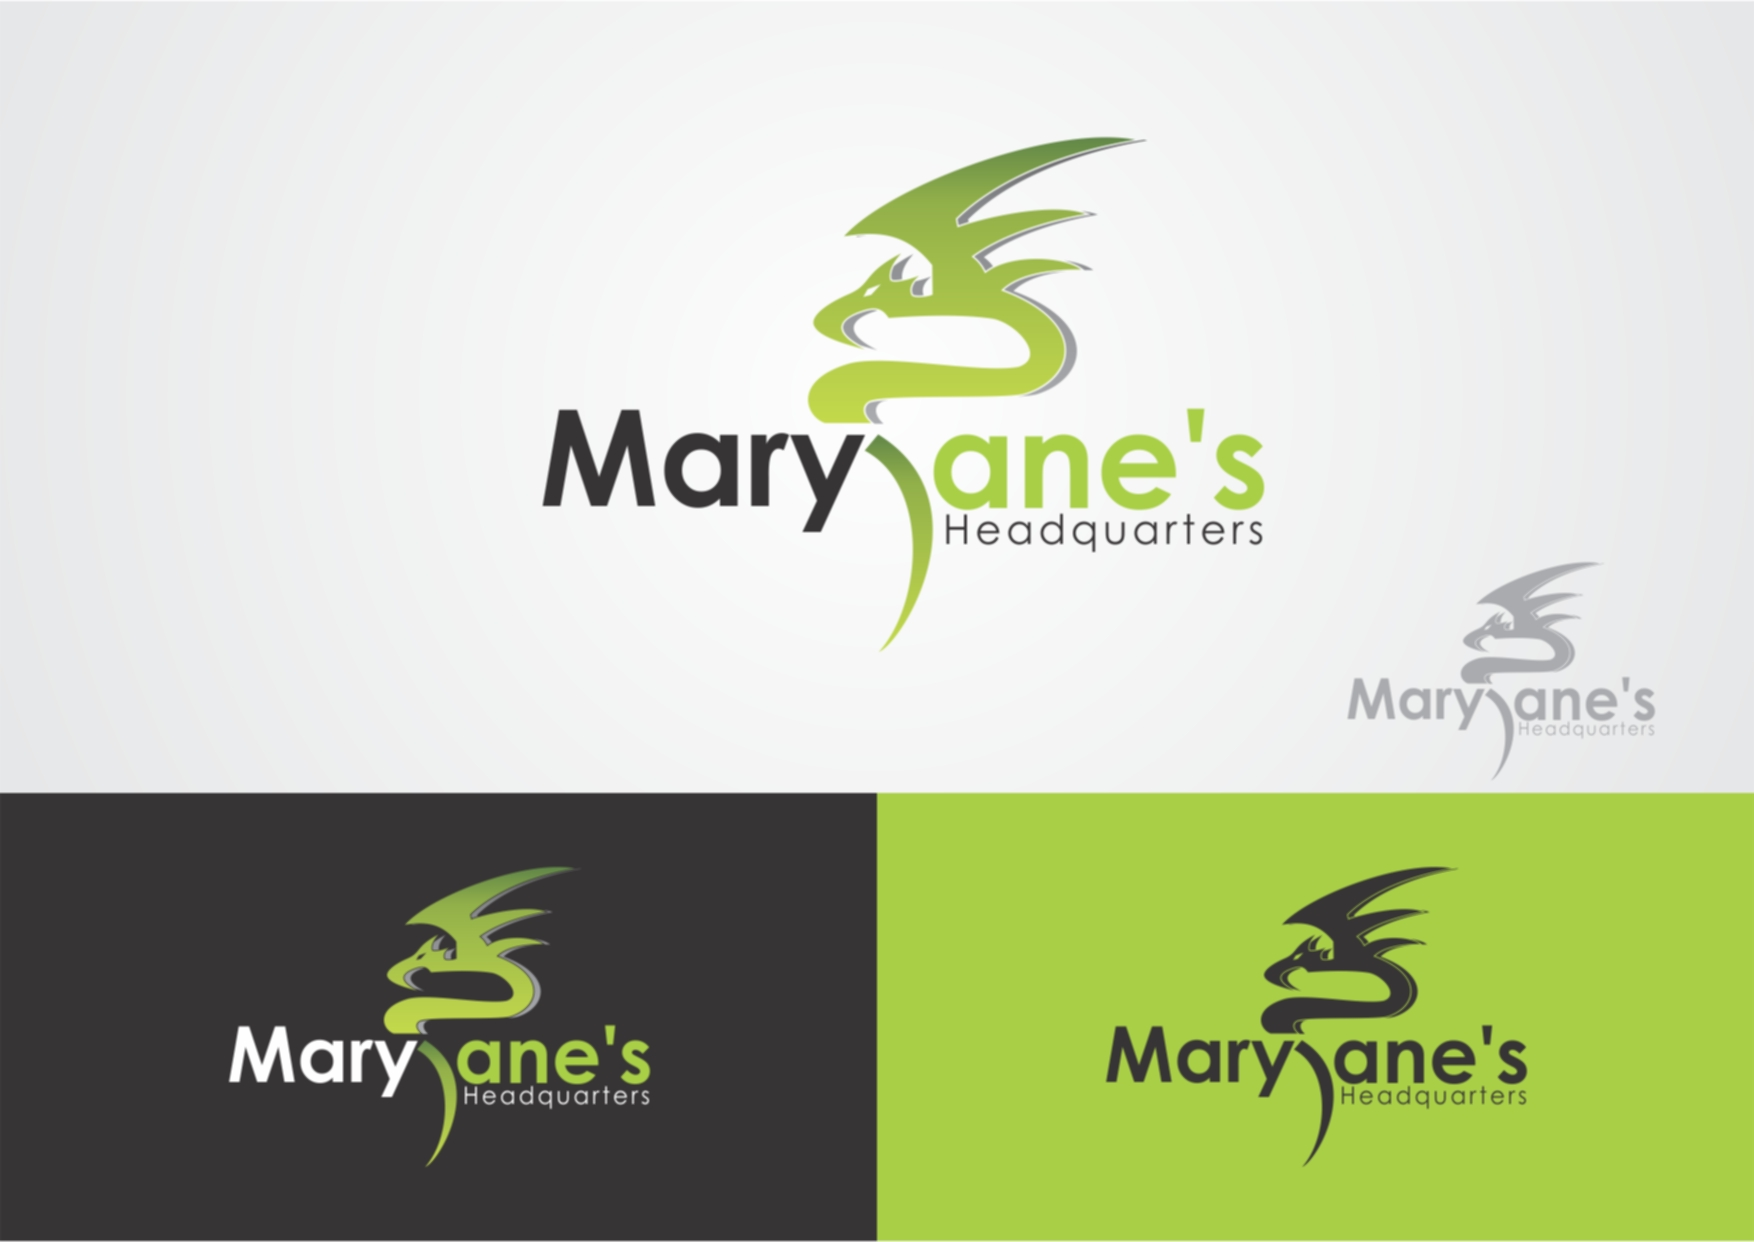 Logo Design by Private User - Entry No. 38 in the Logo Design Contest Mary Jane's Headquarters Logo Design.